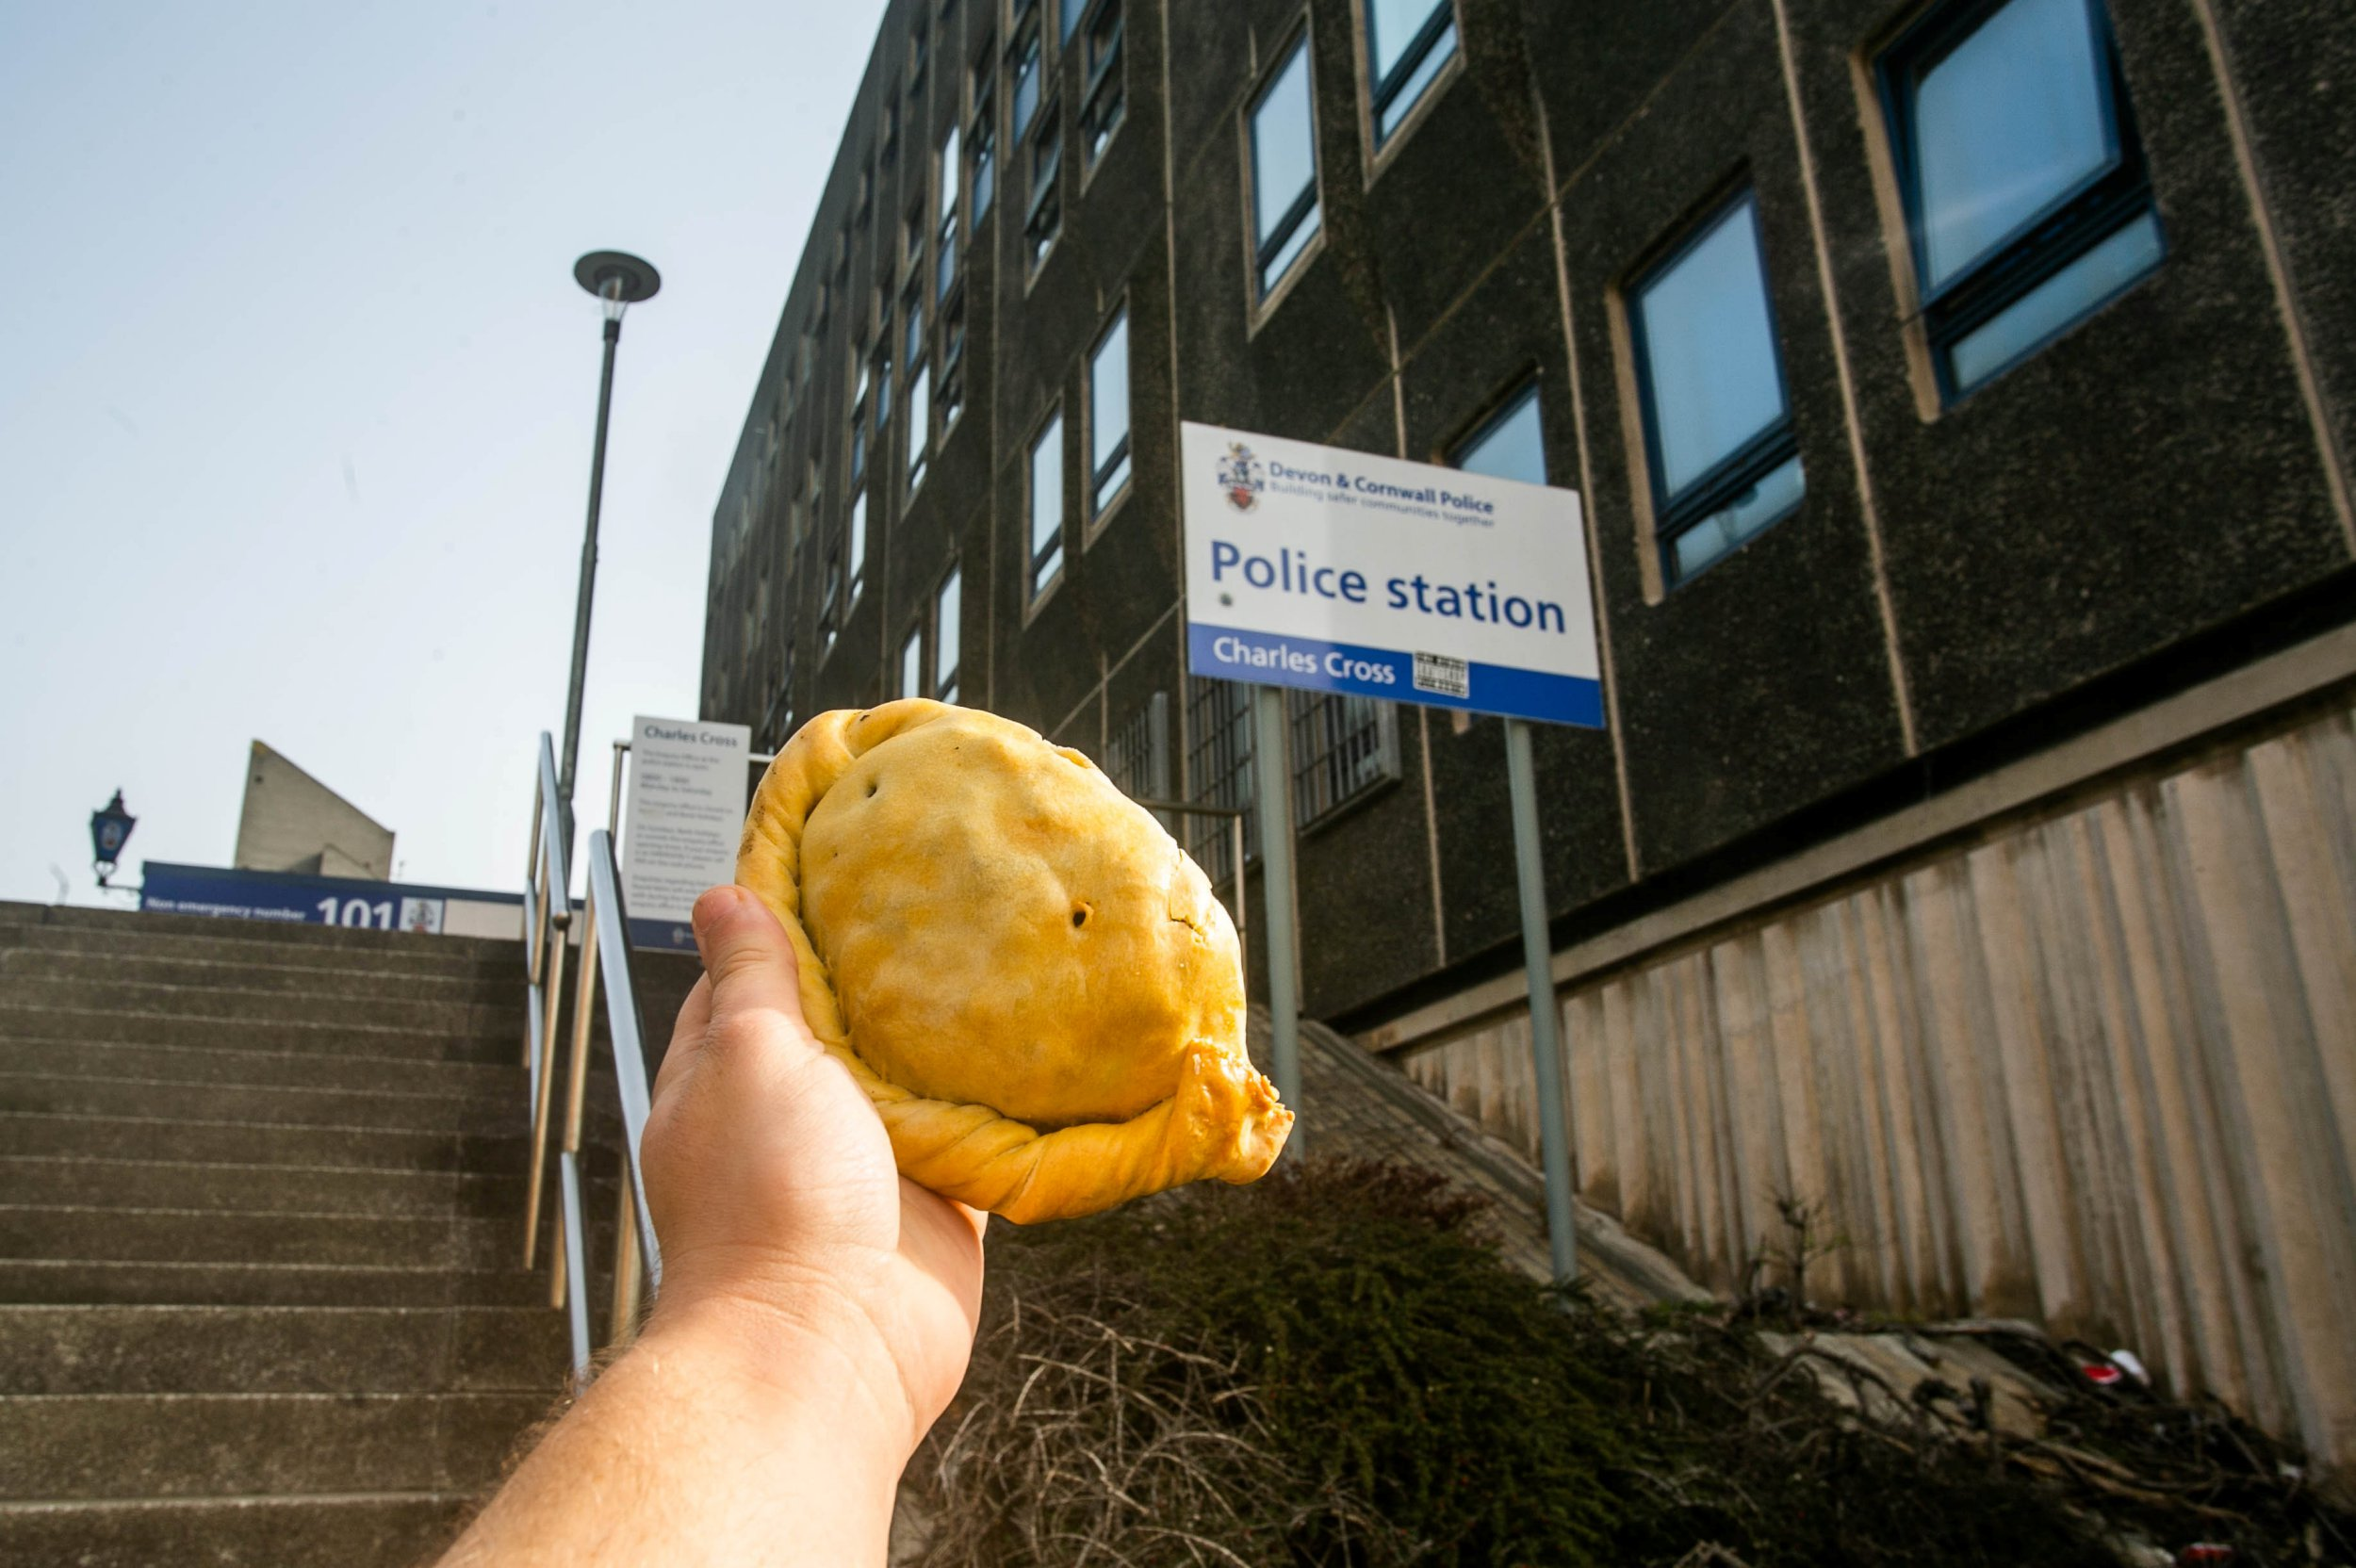 Police give out award-winning pasties to suspects in the cells